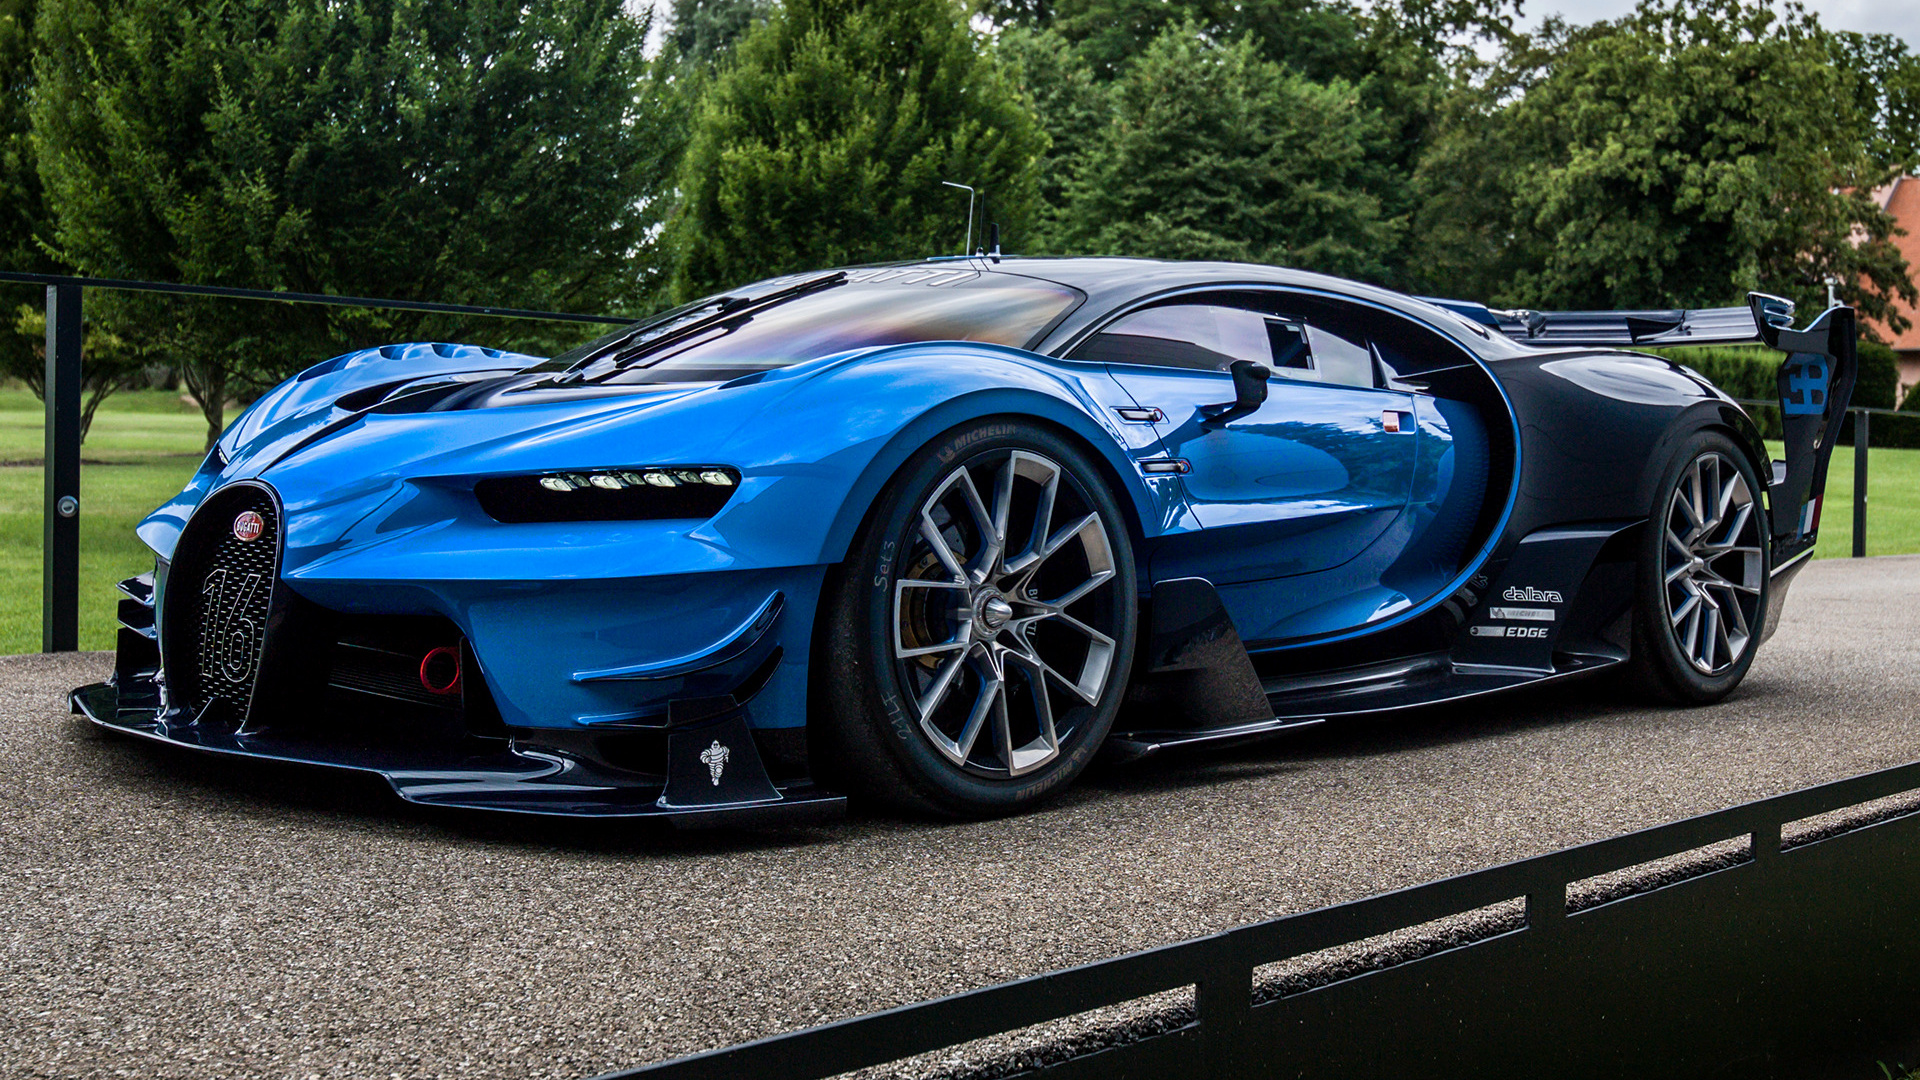 Mercedes Benz Hd Wallpapers 1080p Bugatti Vision Gran Turismo 2015 Wallpapers And Hd